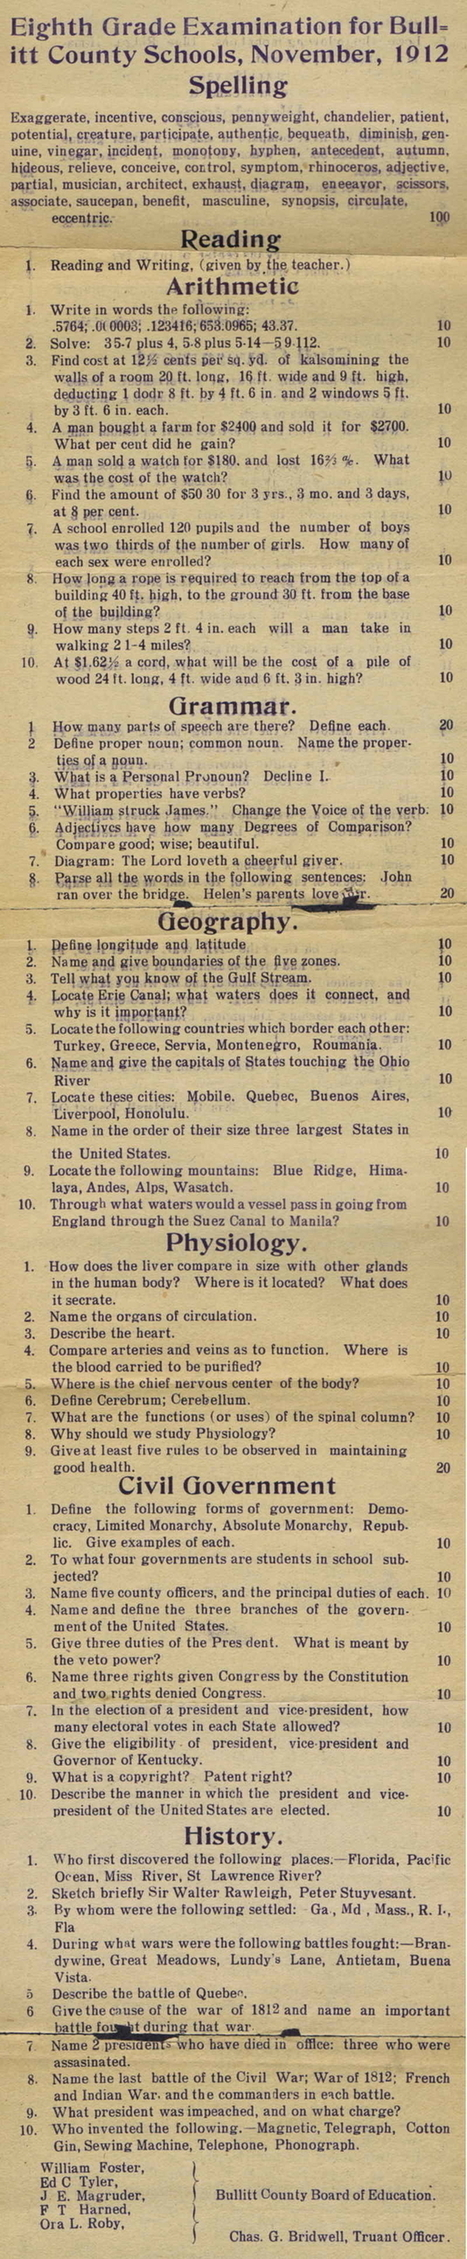 Can You Pass This Test Originally Given to 8th Graders Living in Kentucky in 1912? | Beyond the Stacks | Scoop.it